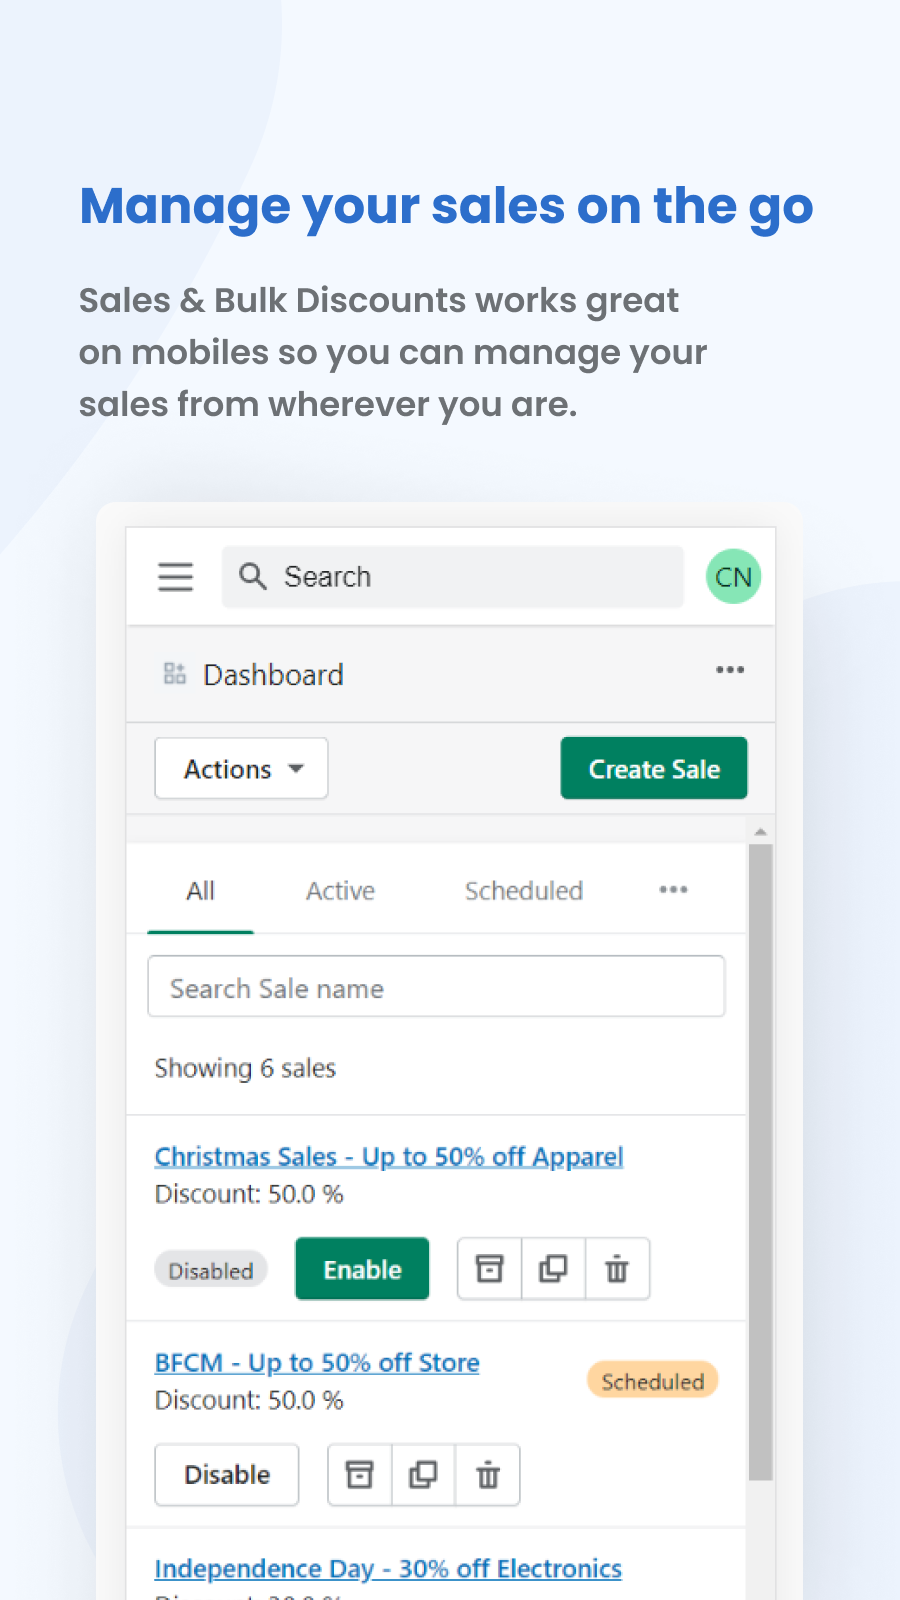 Sales & Bulk Discounts works great on mobile!